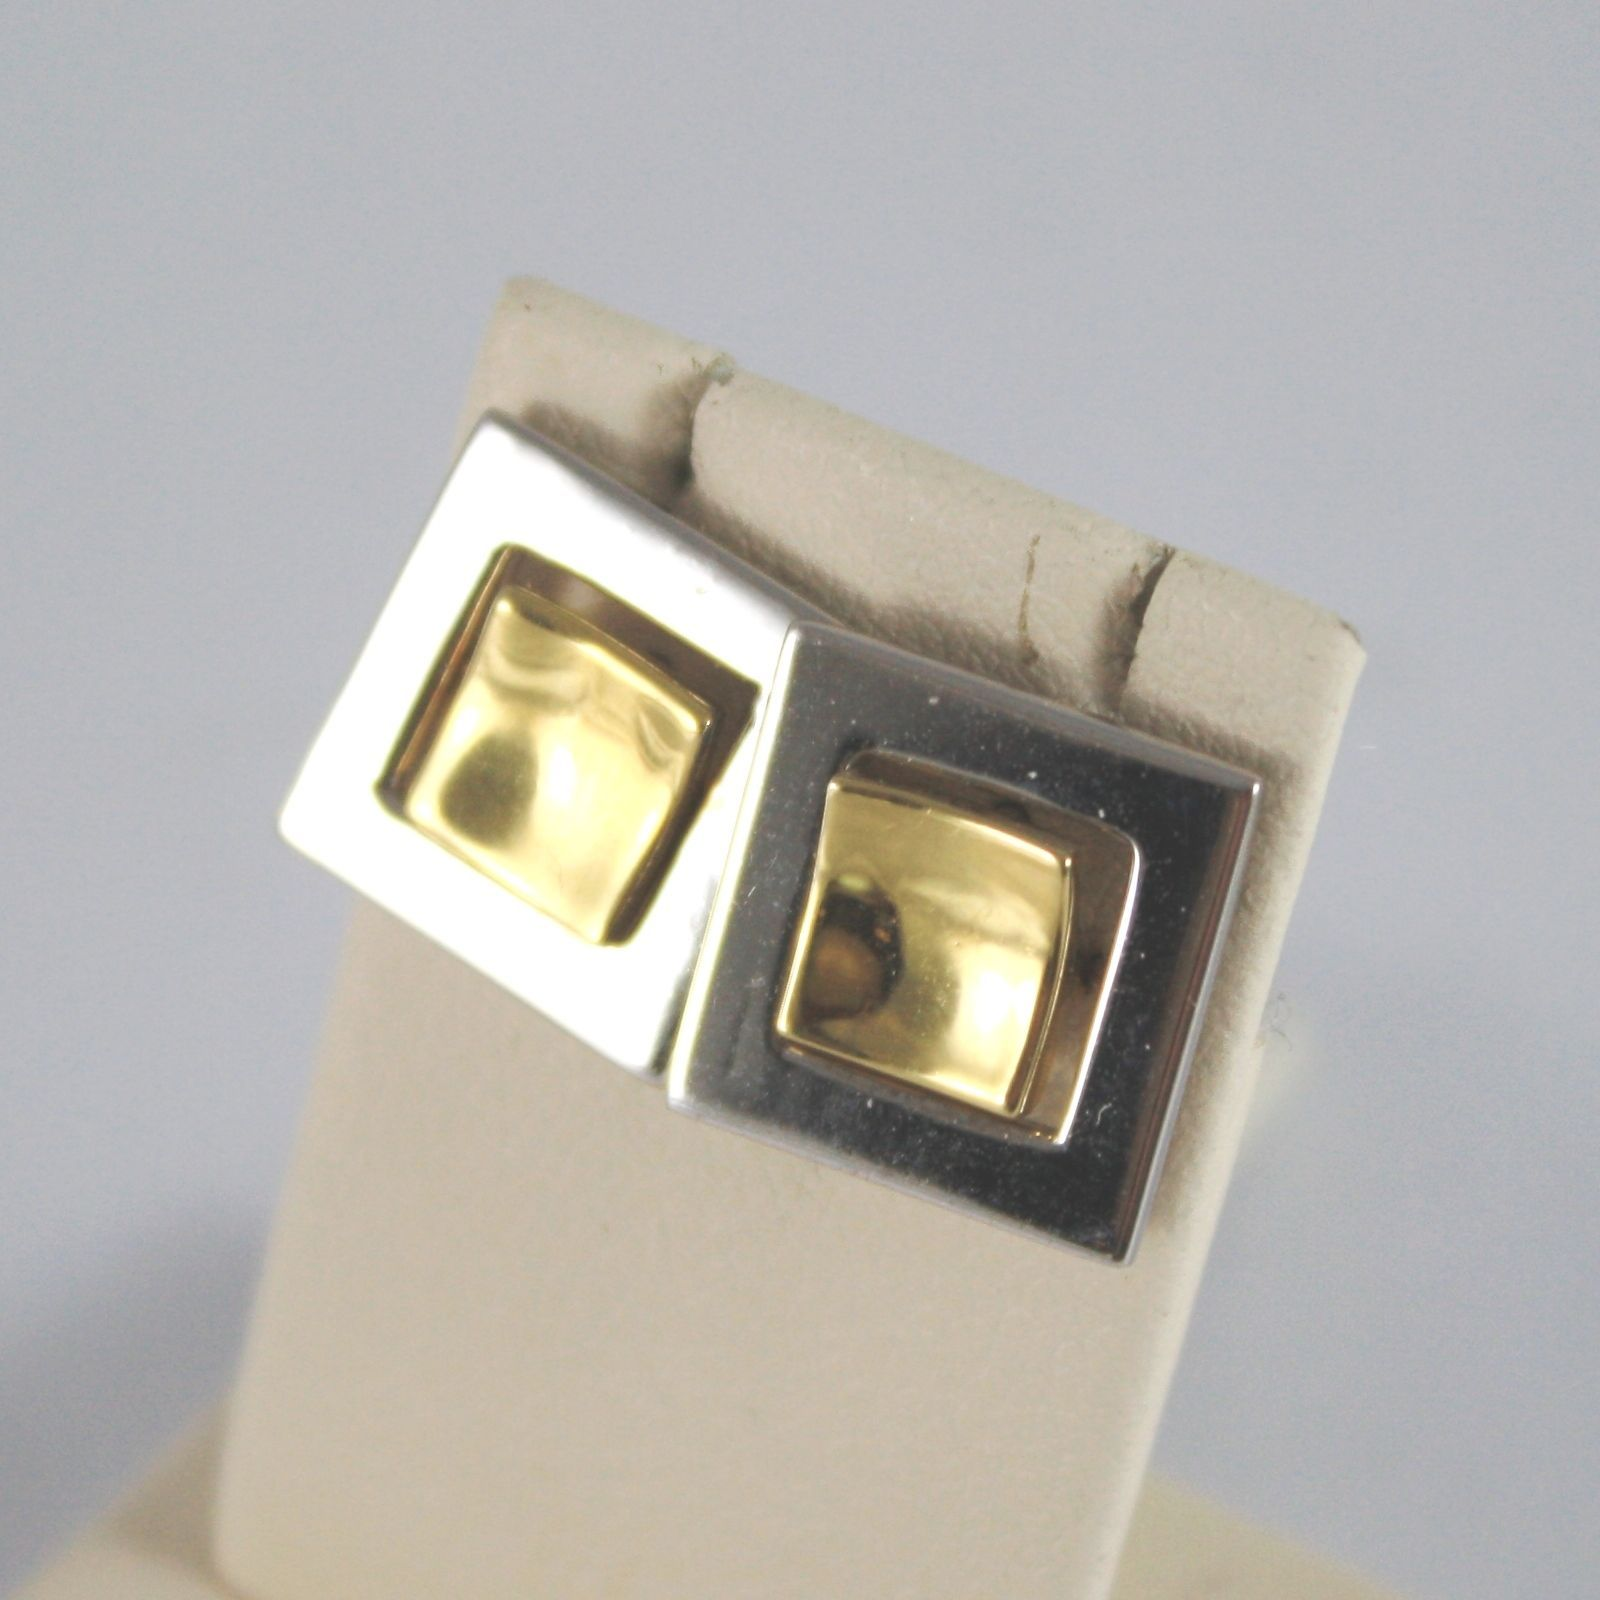 18K SOLID YELLOW AND WHITE GOLD EARRINGS WITH DOUBLE SQUARE MADE IN ITALY 18K